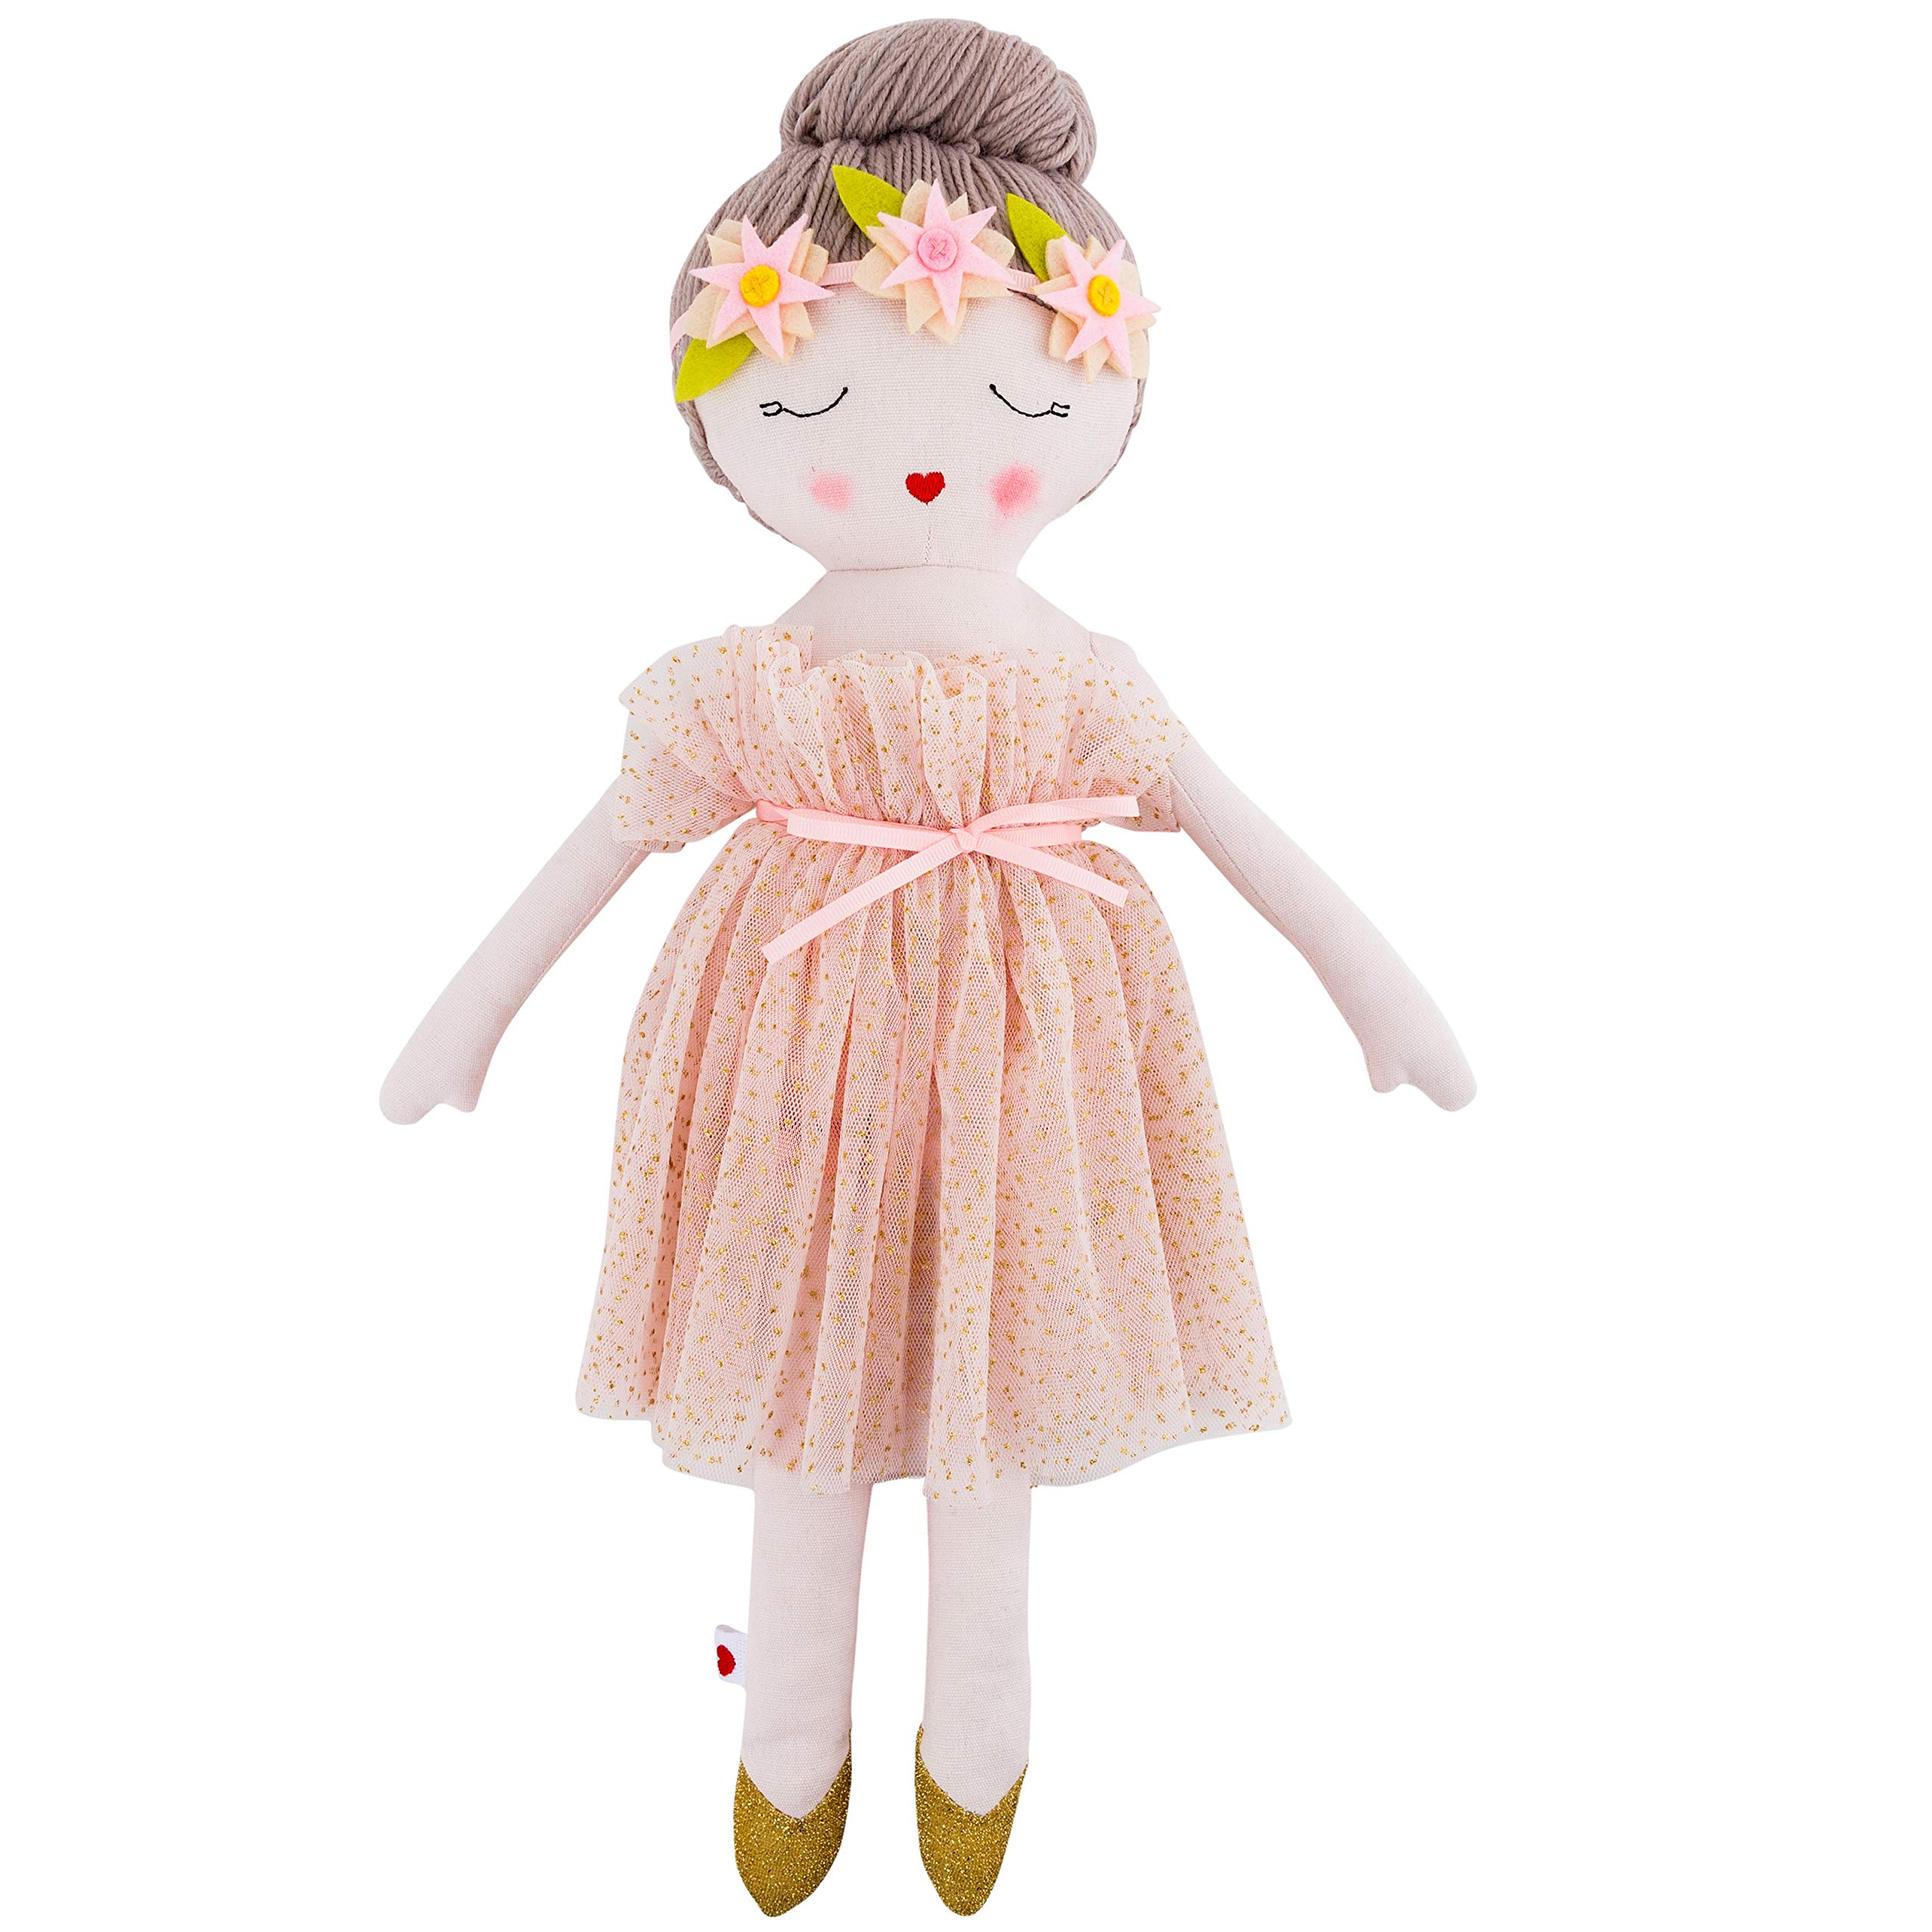 Hearts of Yarn Plush Madeleine Ballerina Doll For Girls Soft Sleeping Cuddle Buddy For Toddlers, Infants and Babies 19 inches Tall Extra Large, Handmade First Baby Doll and Toy Cute Nursery Room Decor by Hearts of Yarn